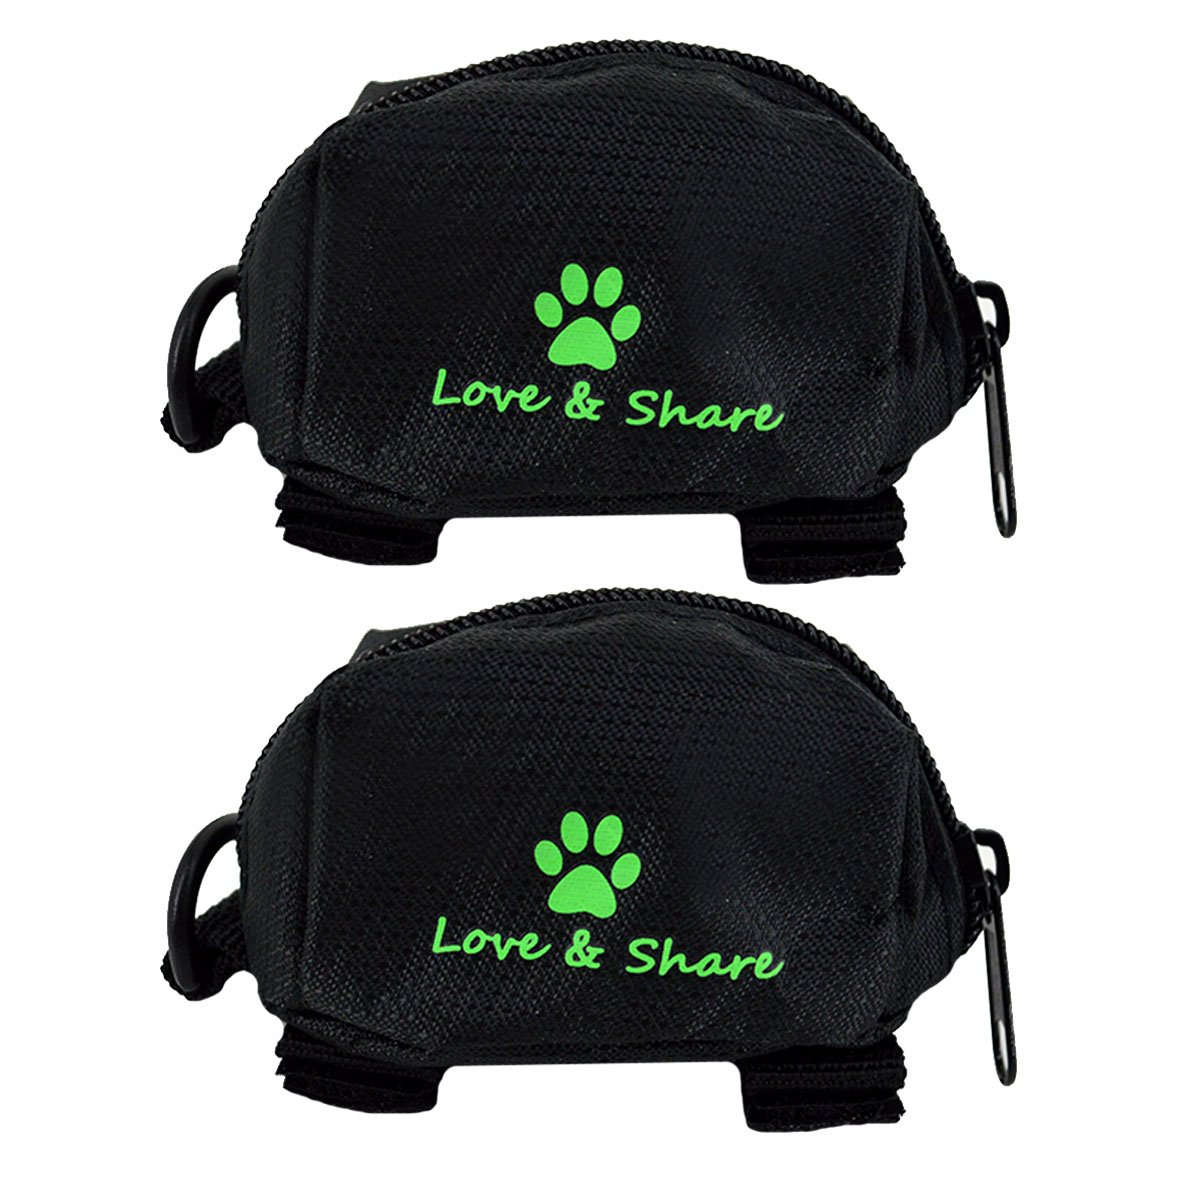 Black Budd Pets Dog Poop Bag Holder, 2 Pieces Oxford Fabric Waste Bag Dispenser Pick-up Bag Zippered Pouch (Black)